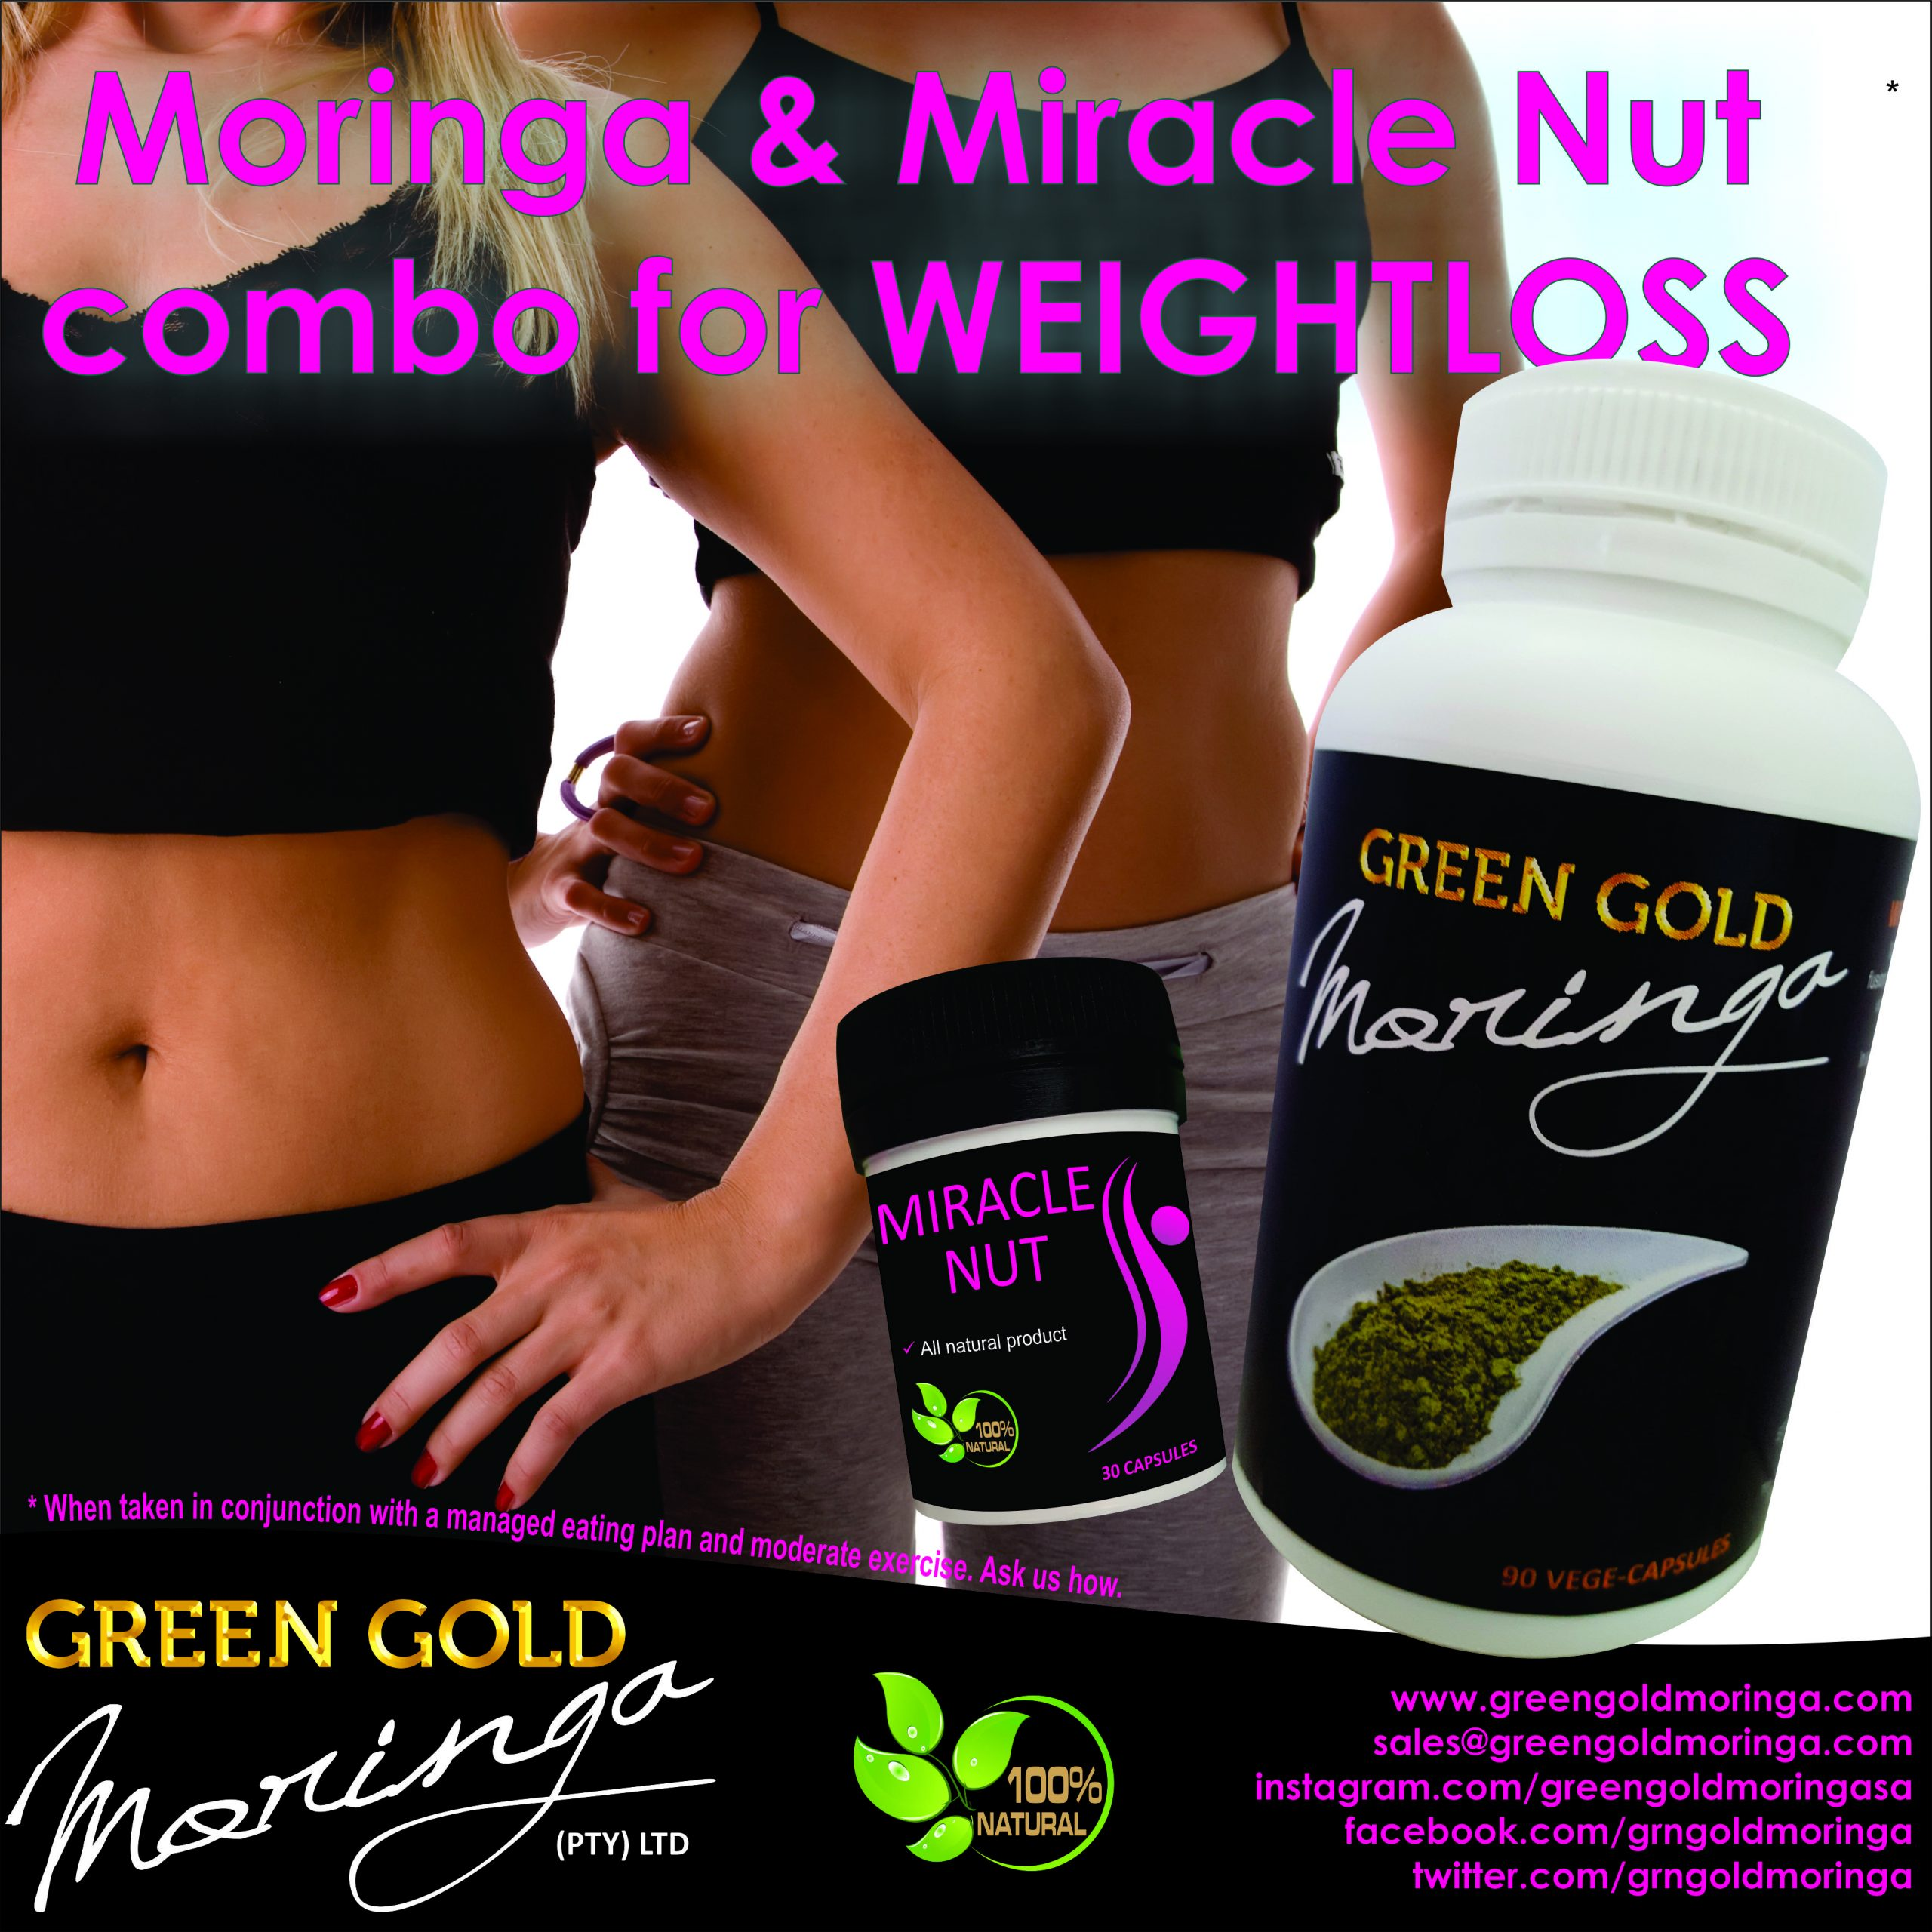 Green Gold Moringa and Miracle Nut helps with weight management